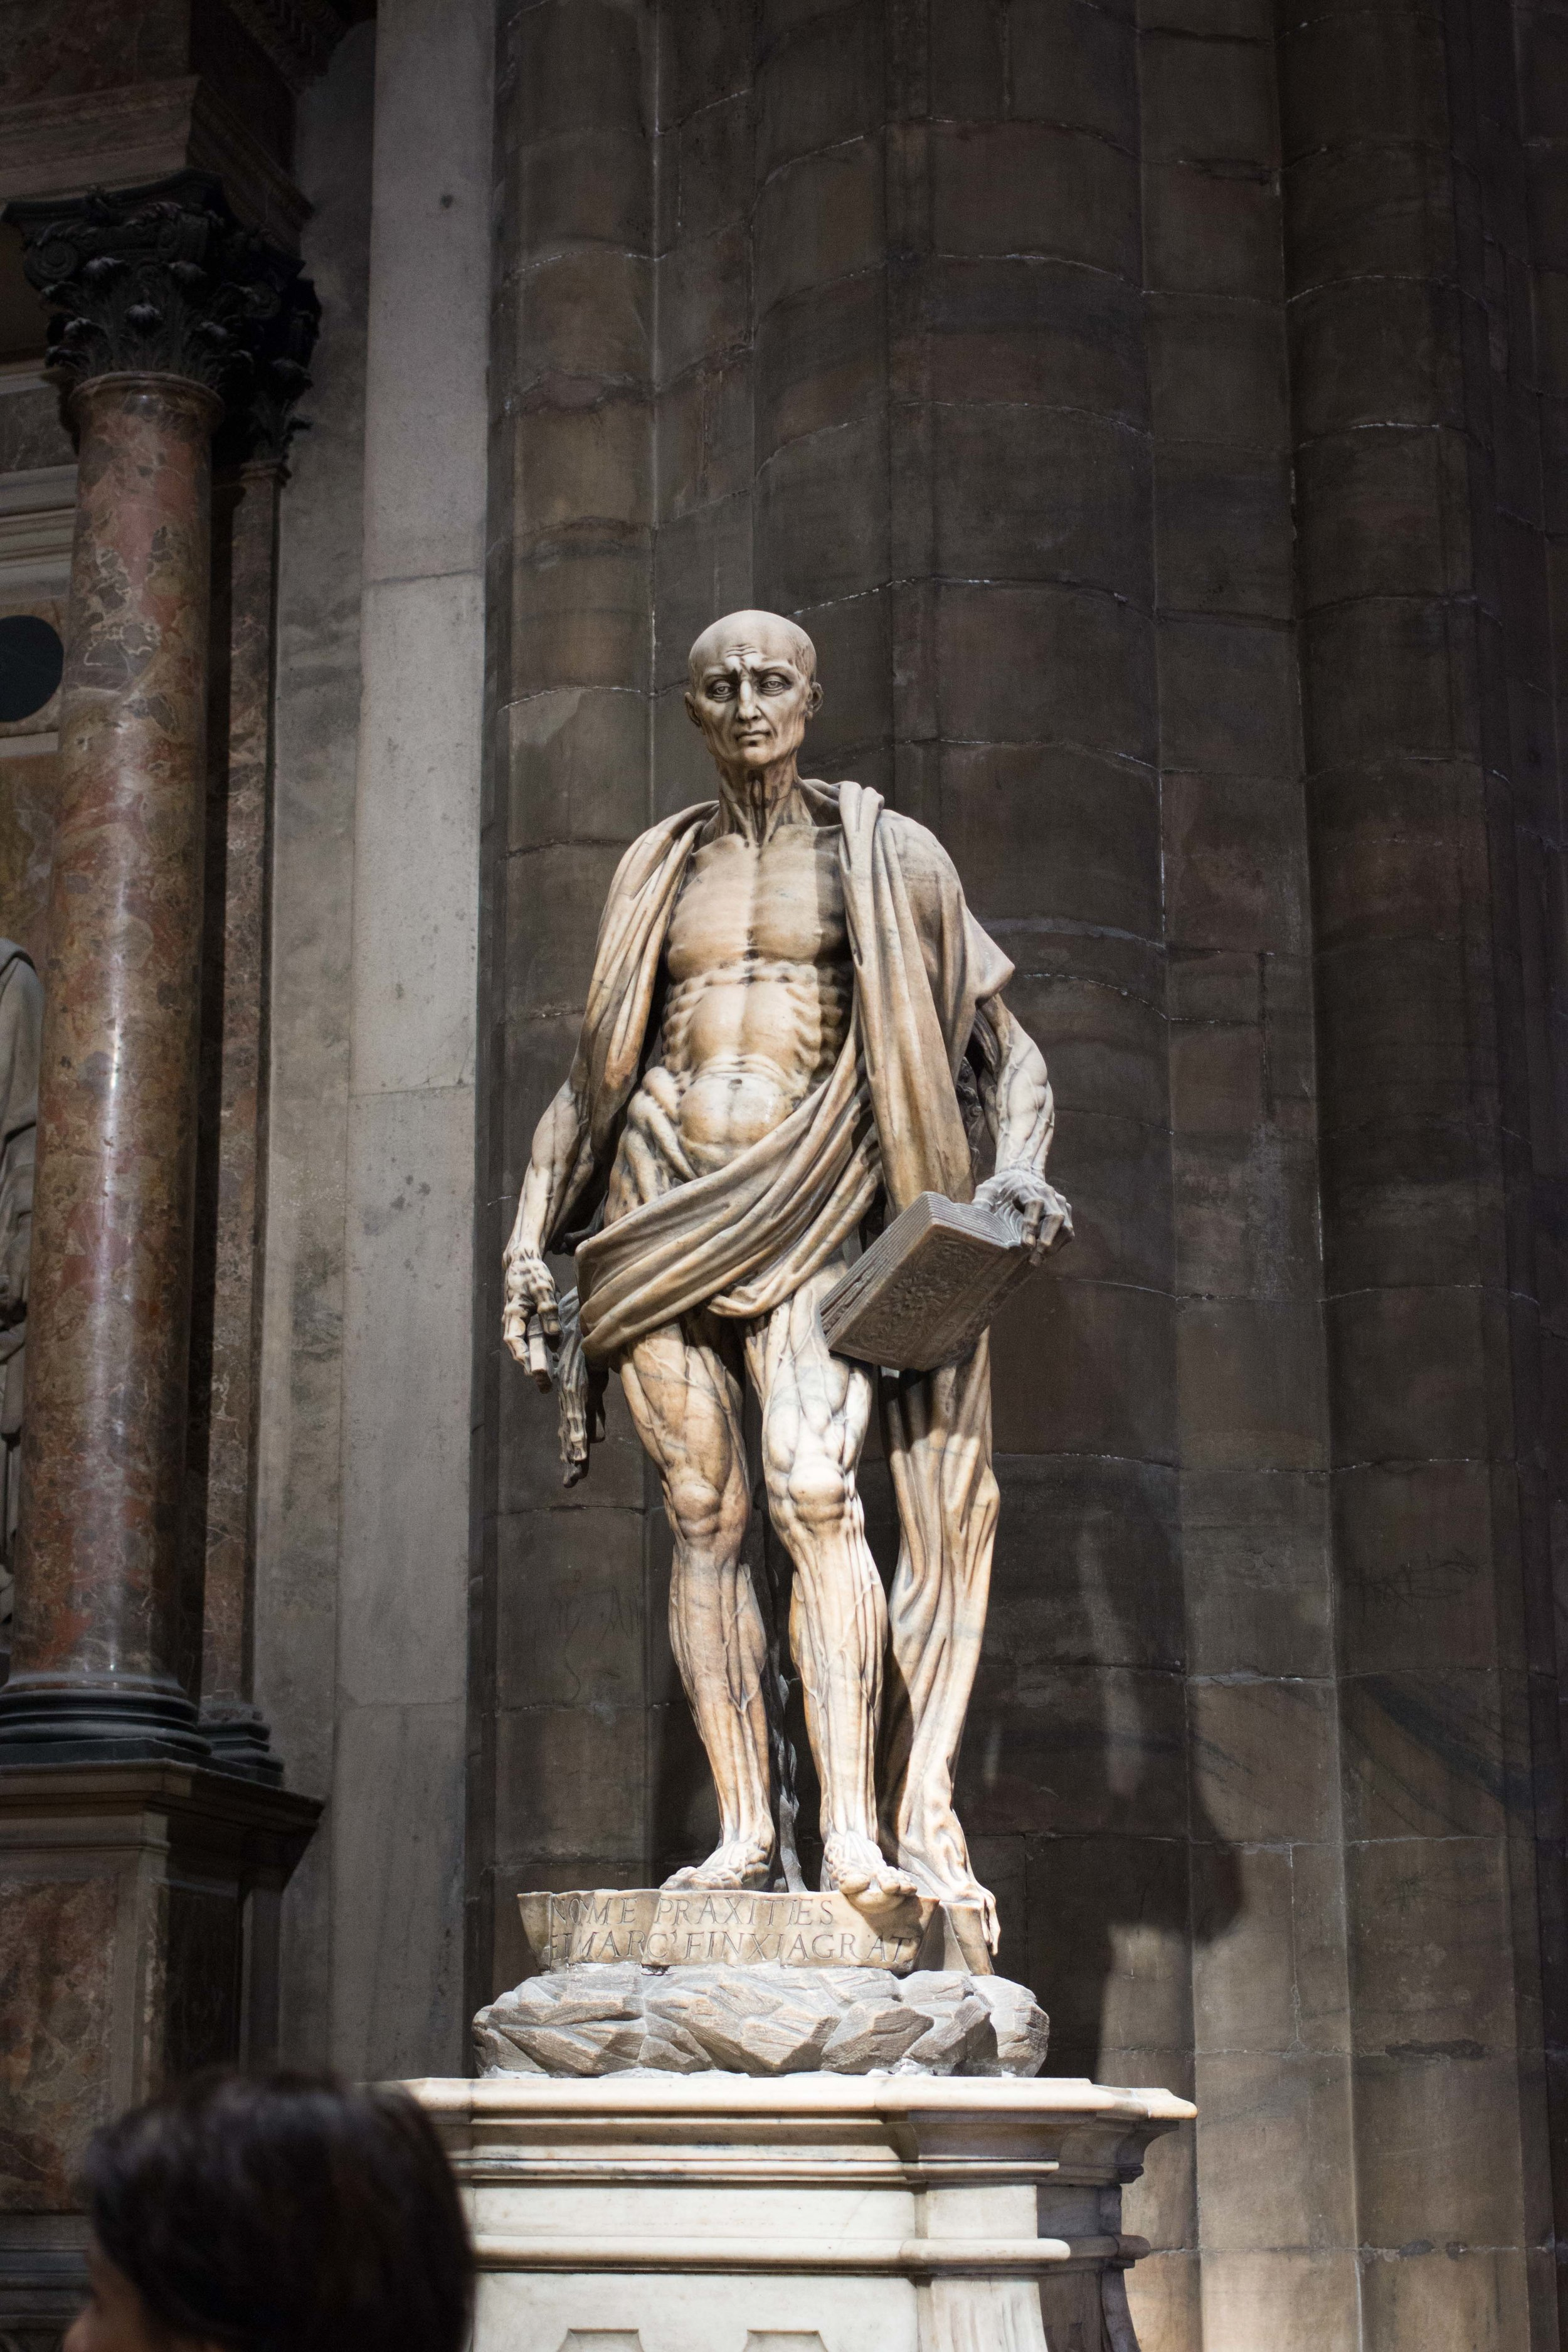 Statue of St. Bartholomew in the Milan Carthedral